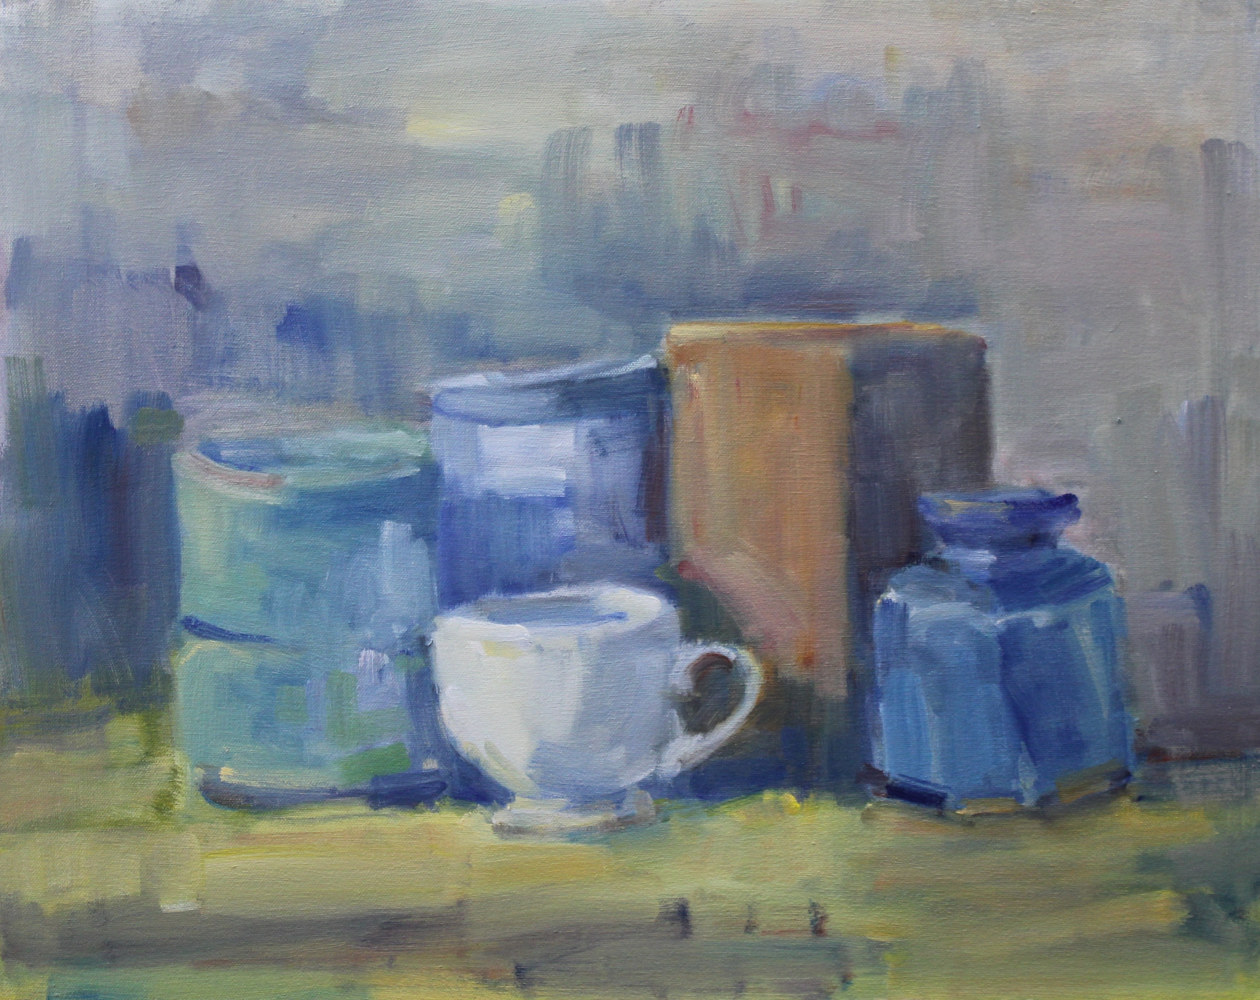 "White Cup with Blue Vase, oil on canvas, 16"" x 20"" by Susan Horn"